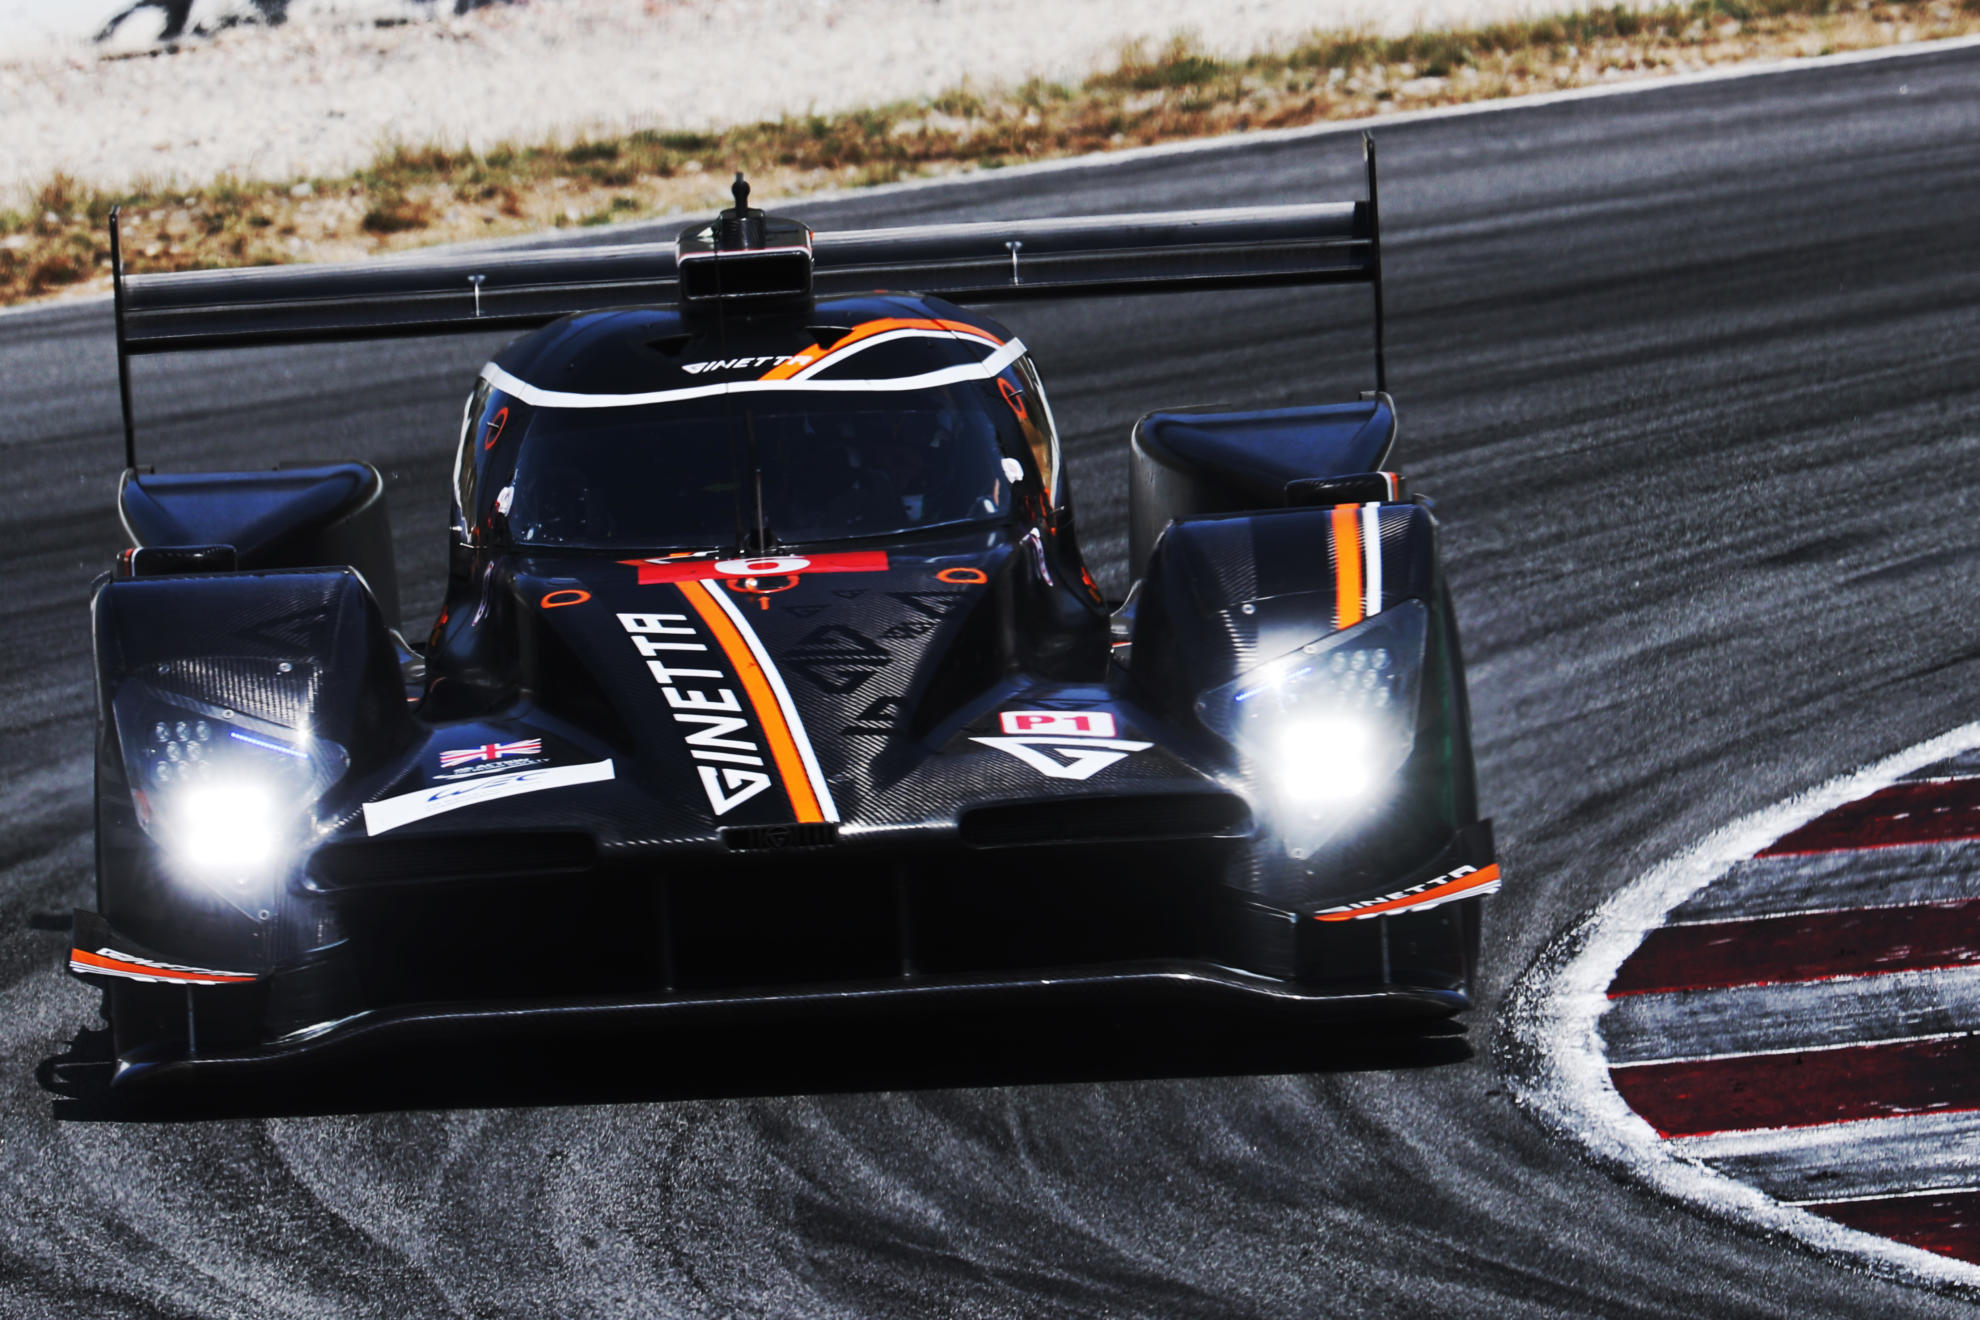 Oliver Jarvis Replaces Injured Chris Dyson At Team LNT Ginetta for WEC Season Opener